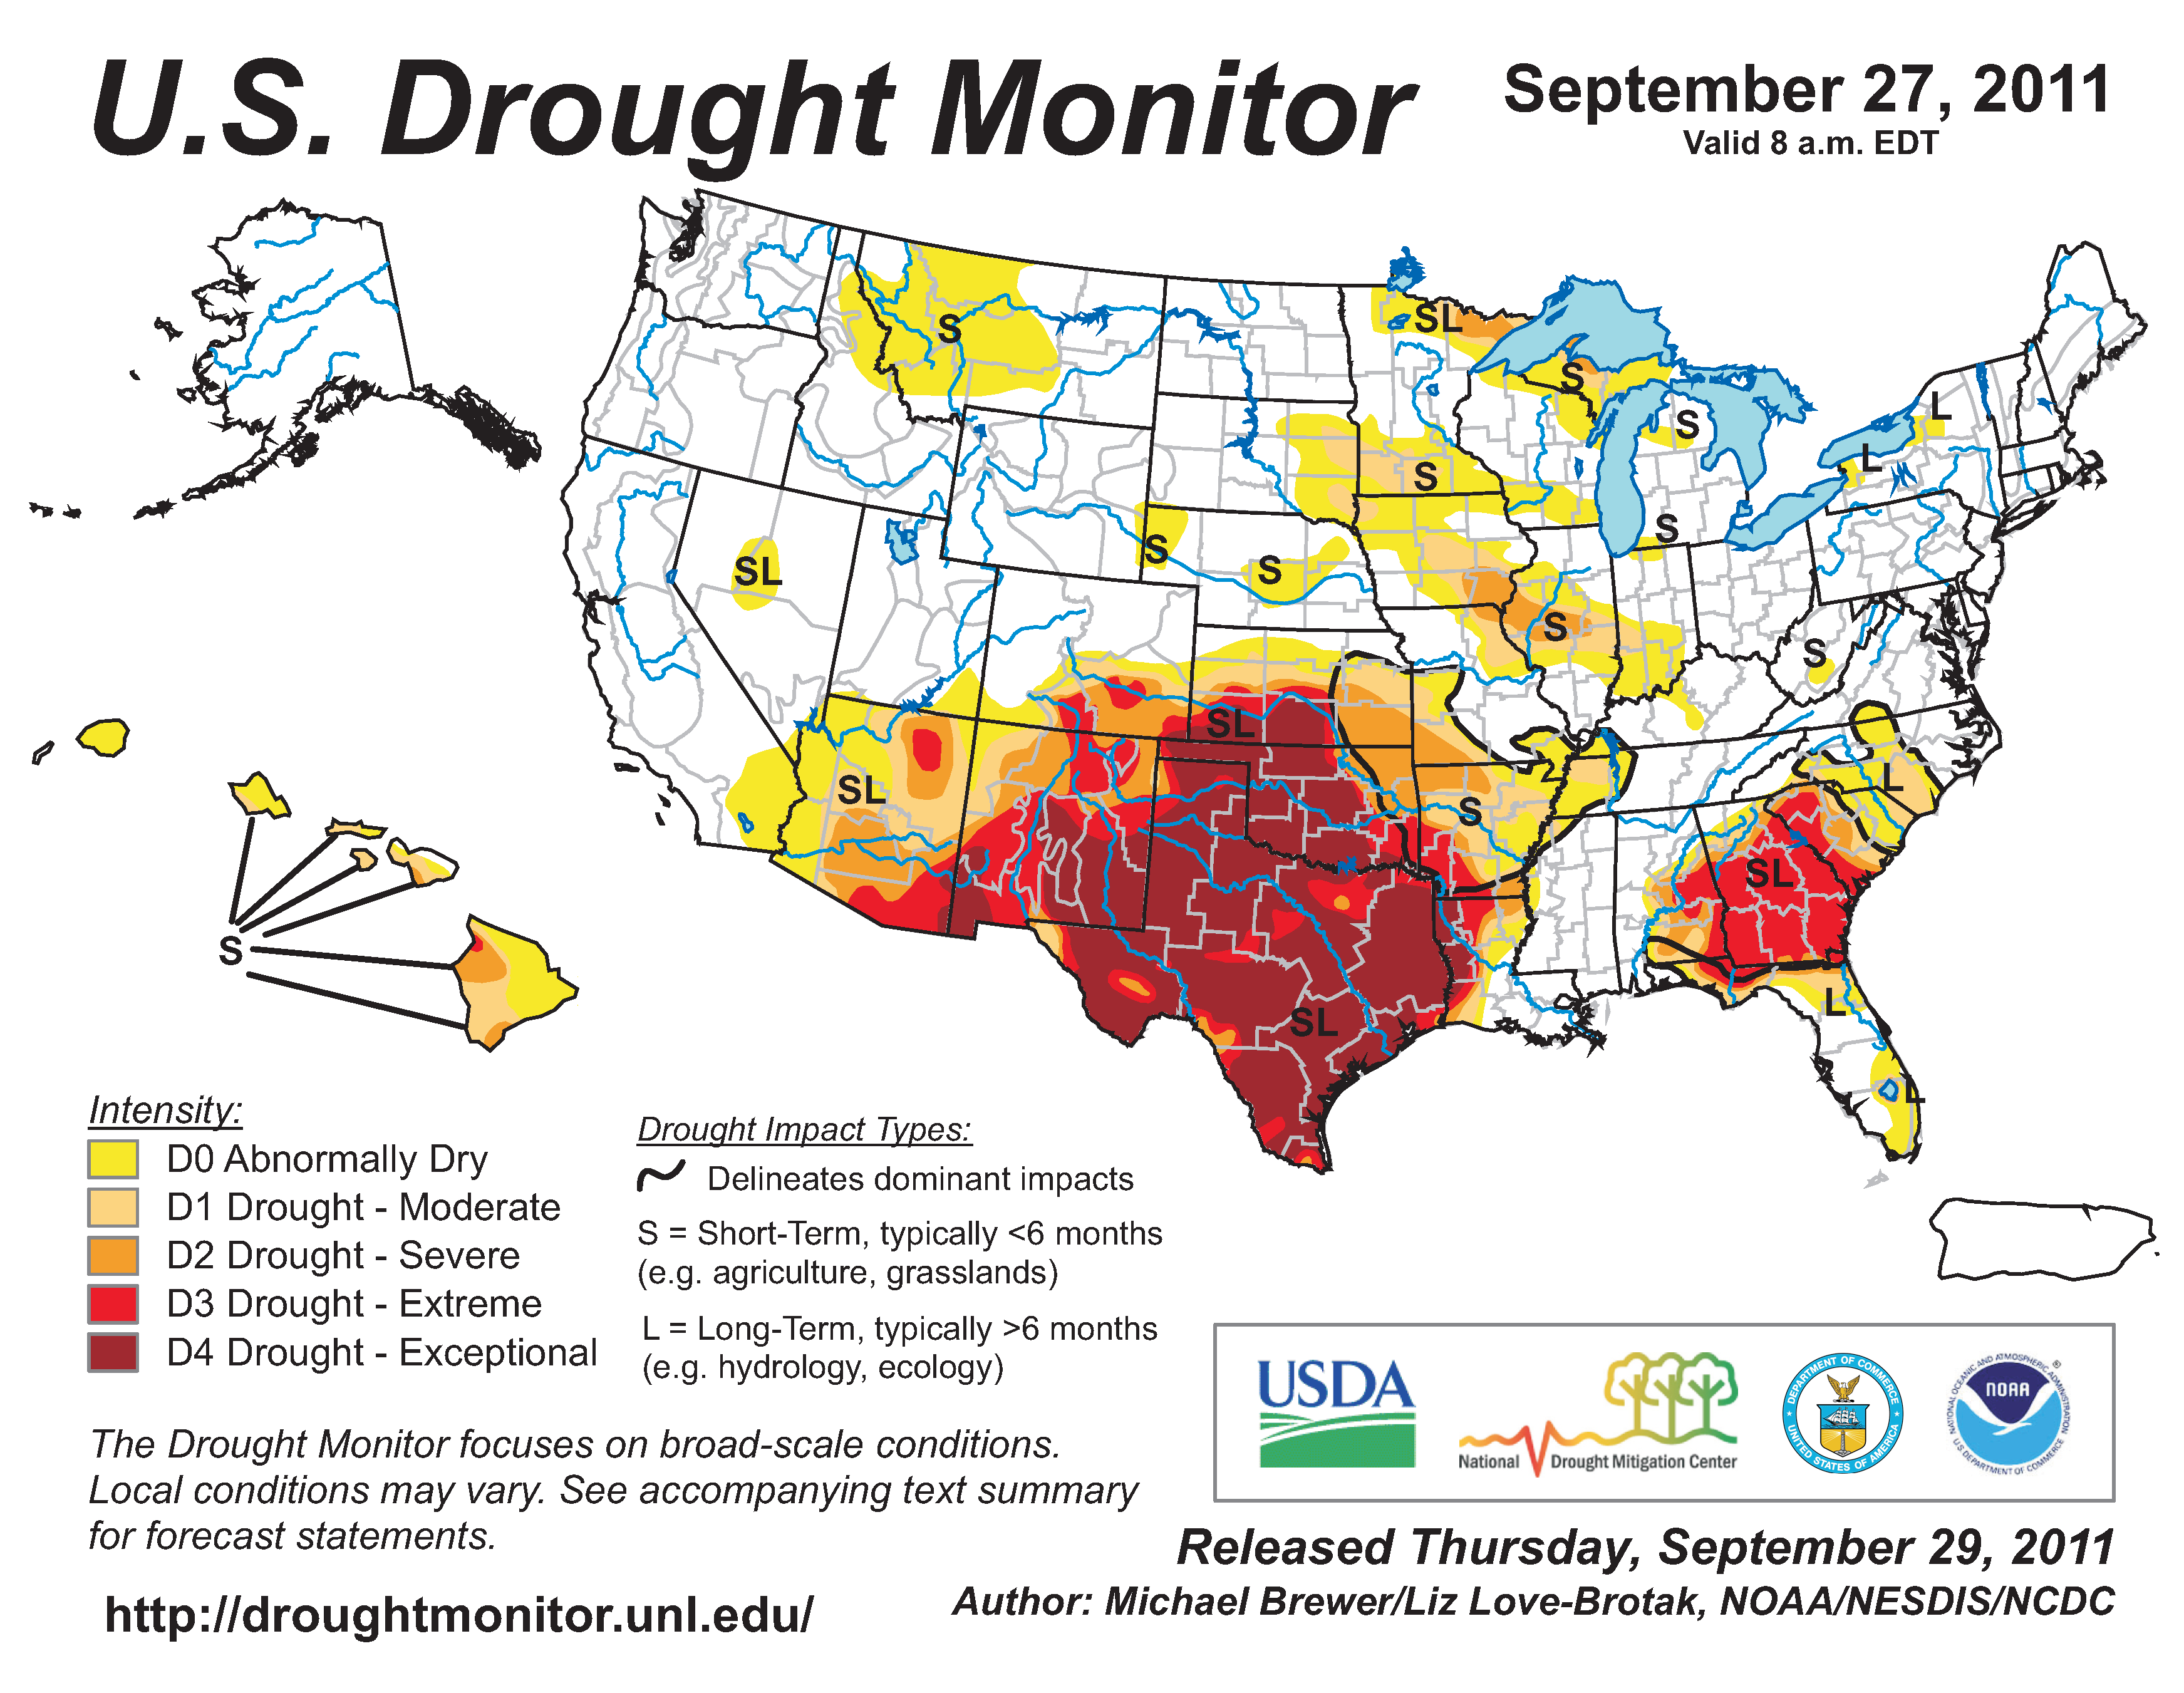 U.S. Drought Monitor map from 27 September 2011